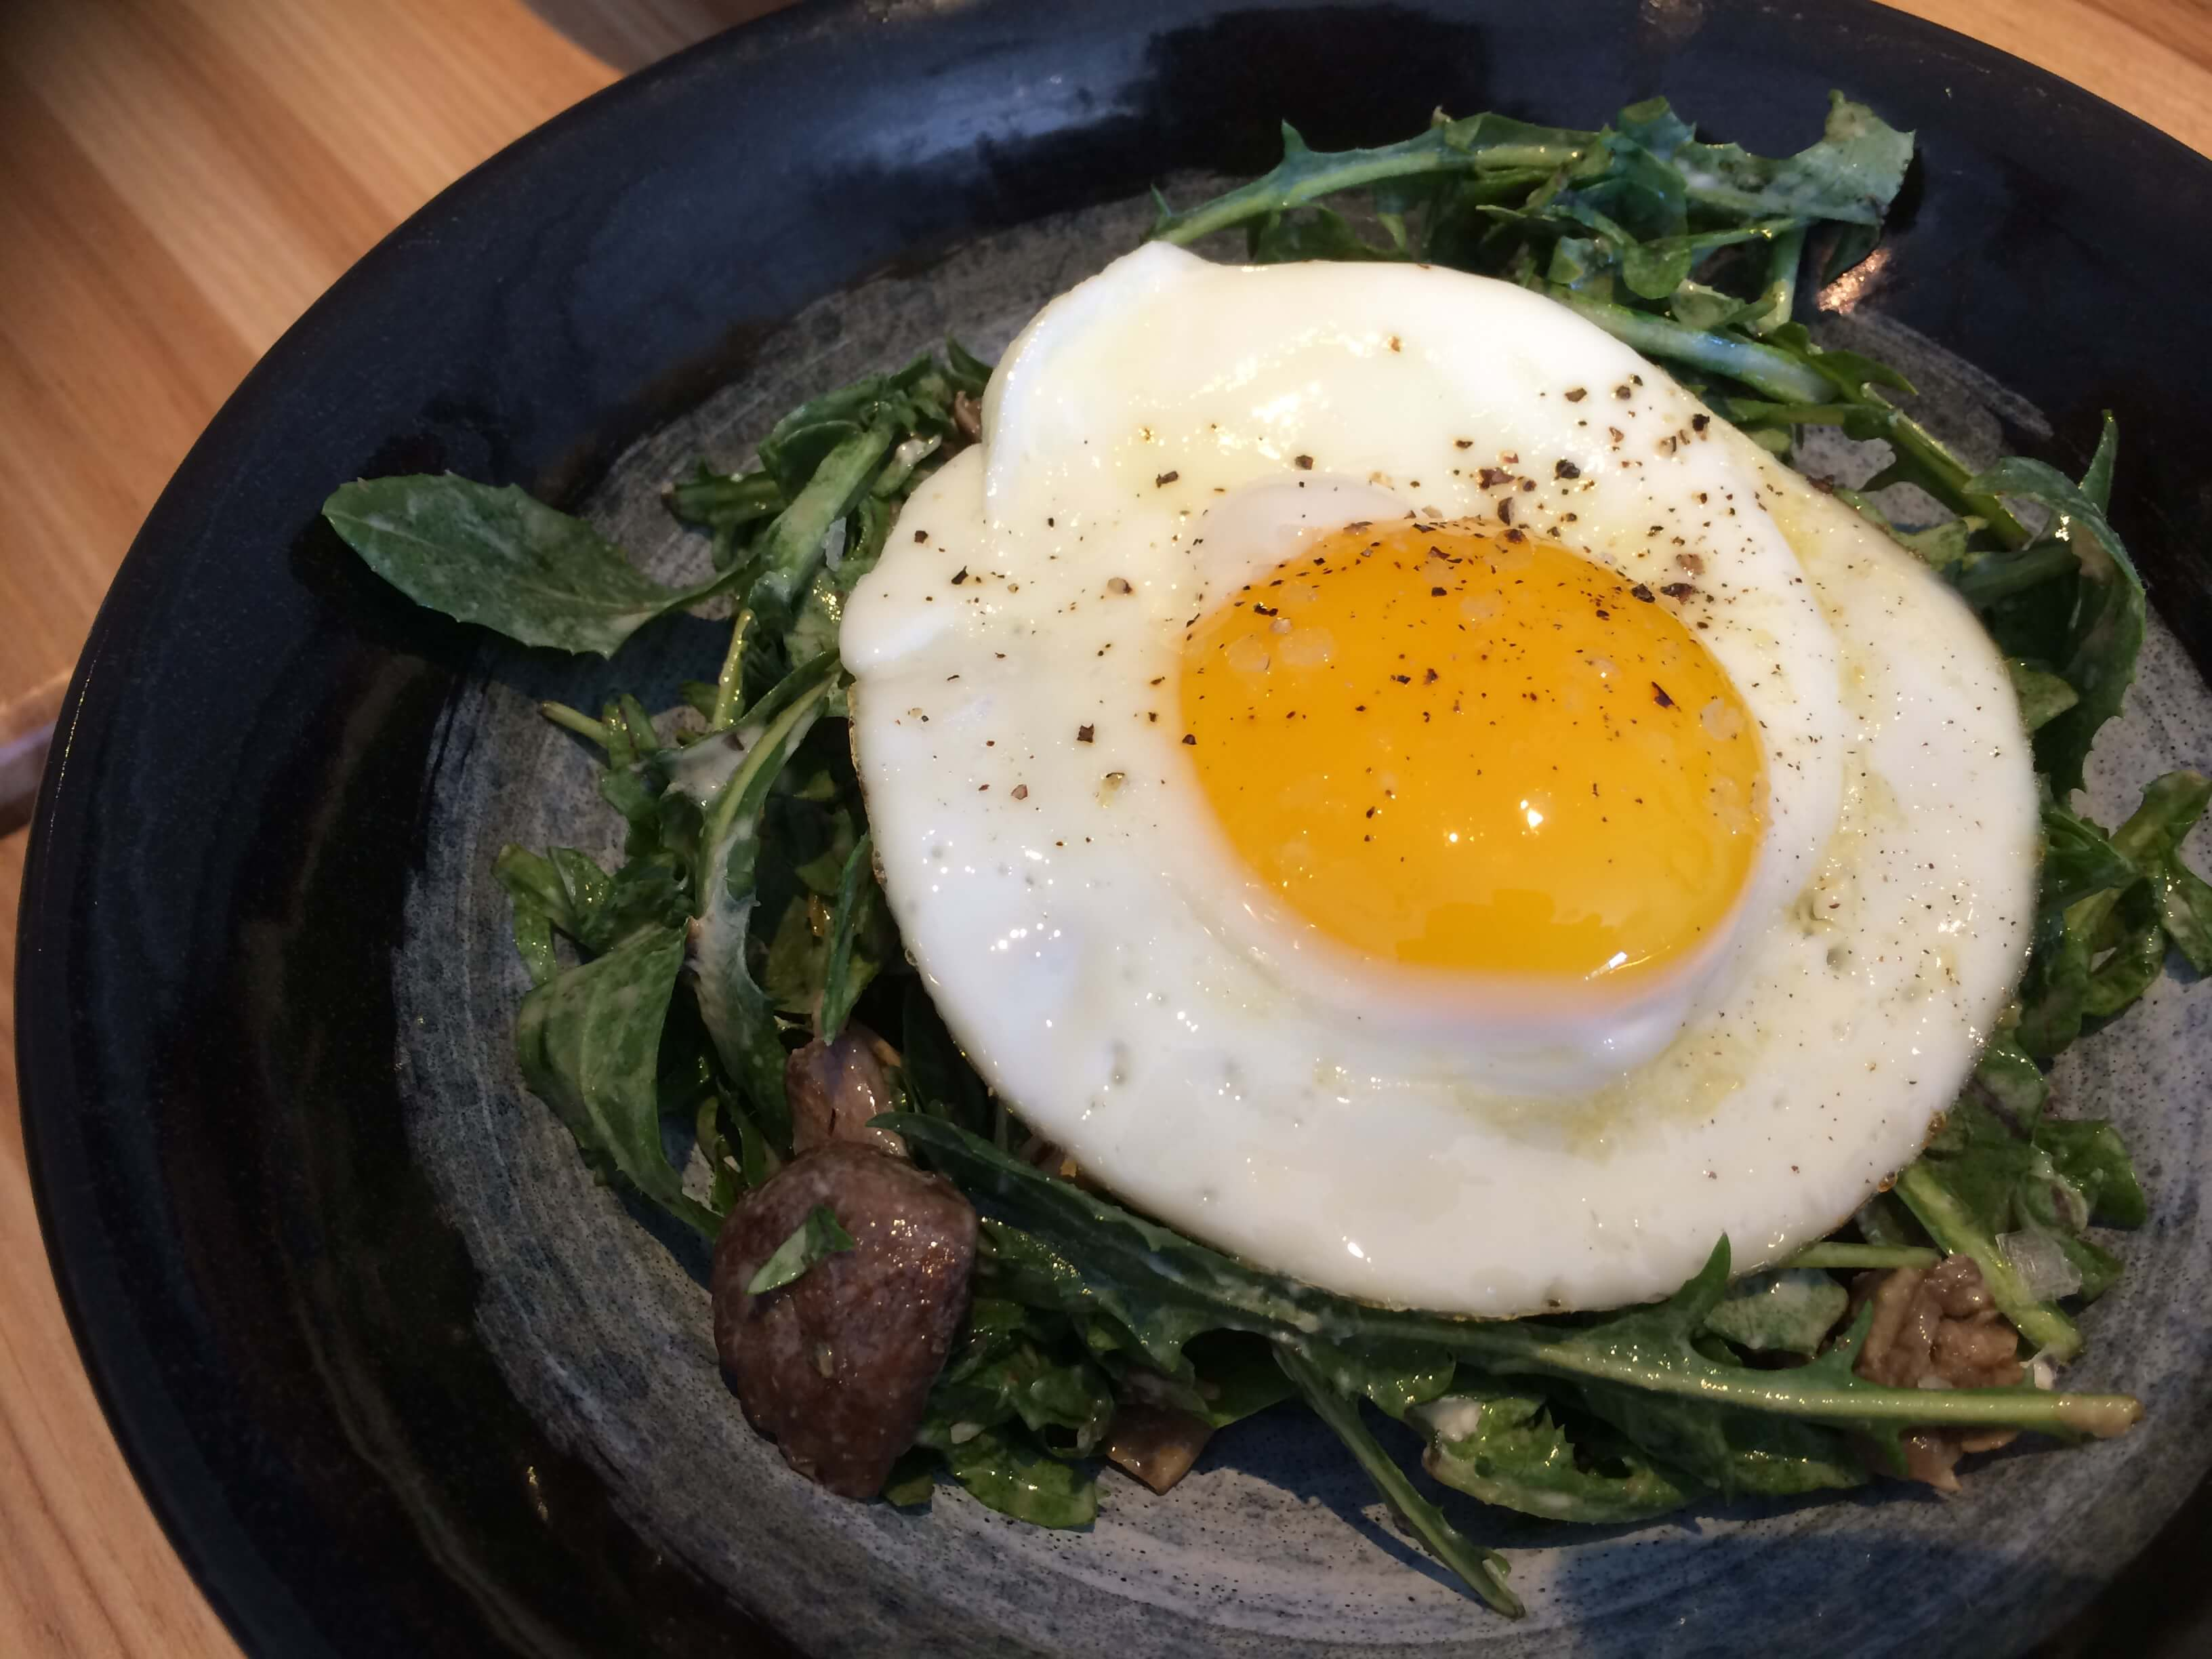 Roasted Mushroom Salad, Dandelion Greens, Savory, Goat cheese, Sunny Egg